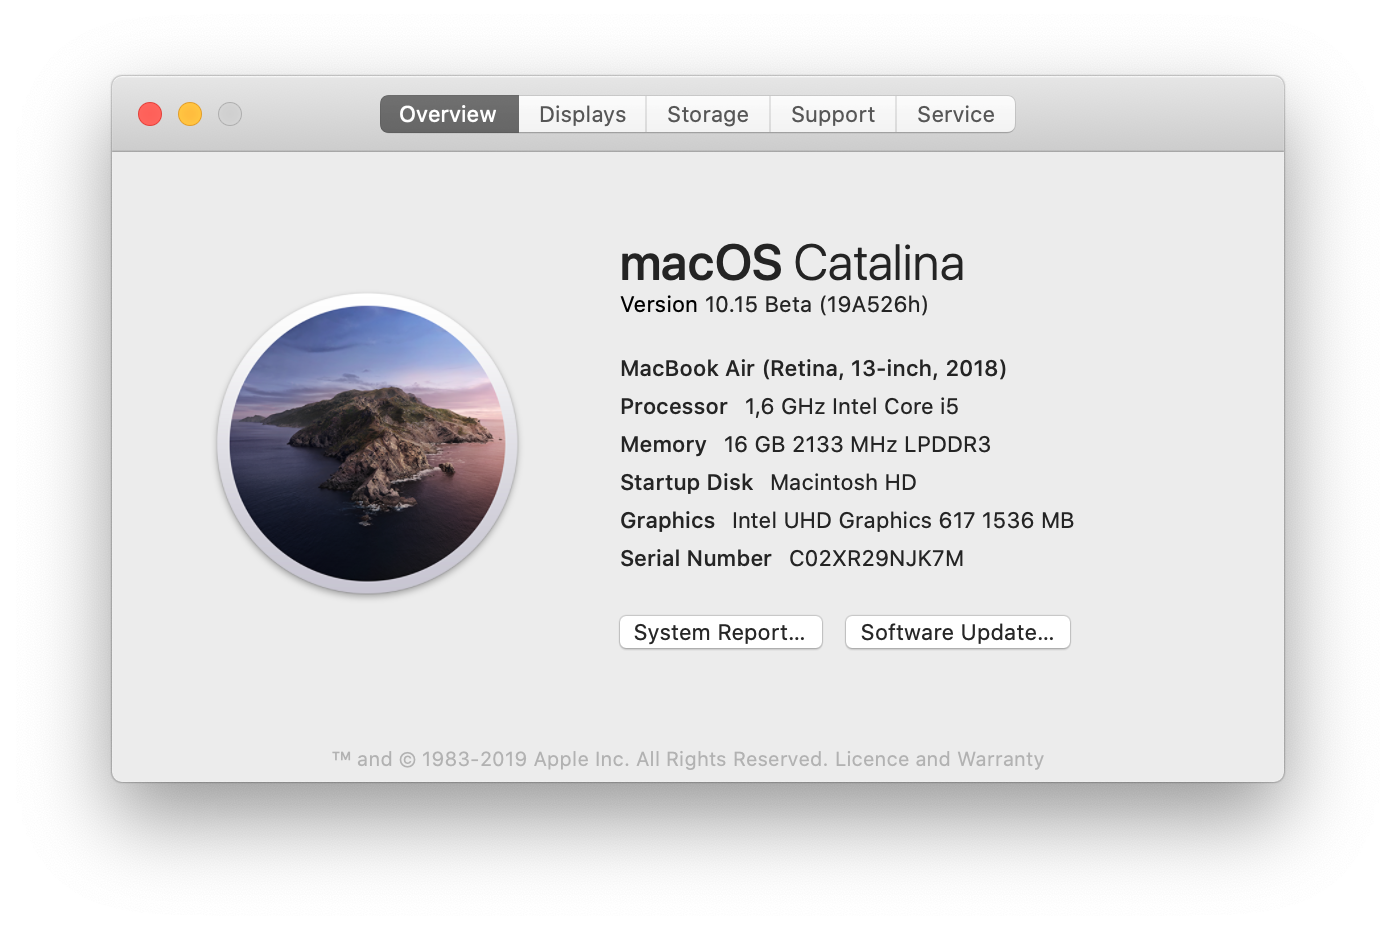 macOS Catalina 10.15 Beta